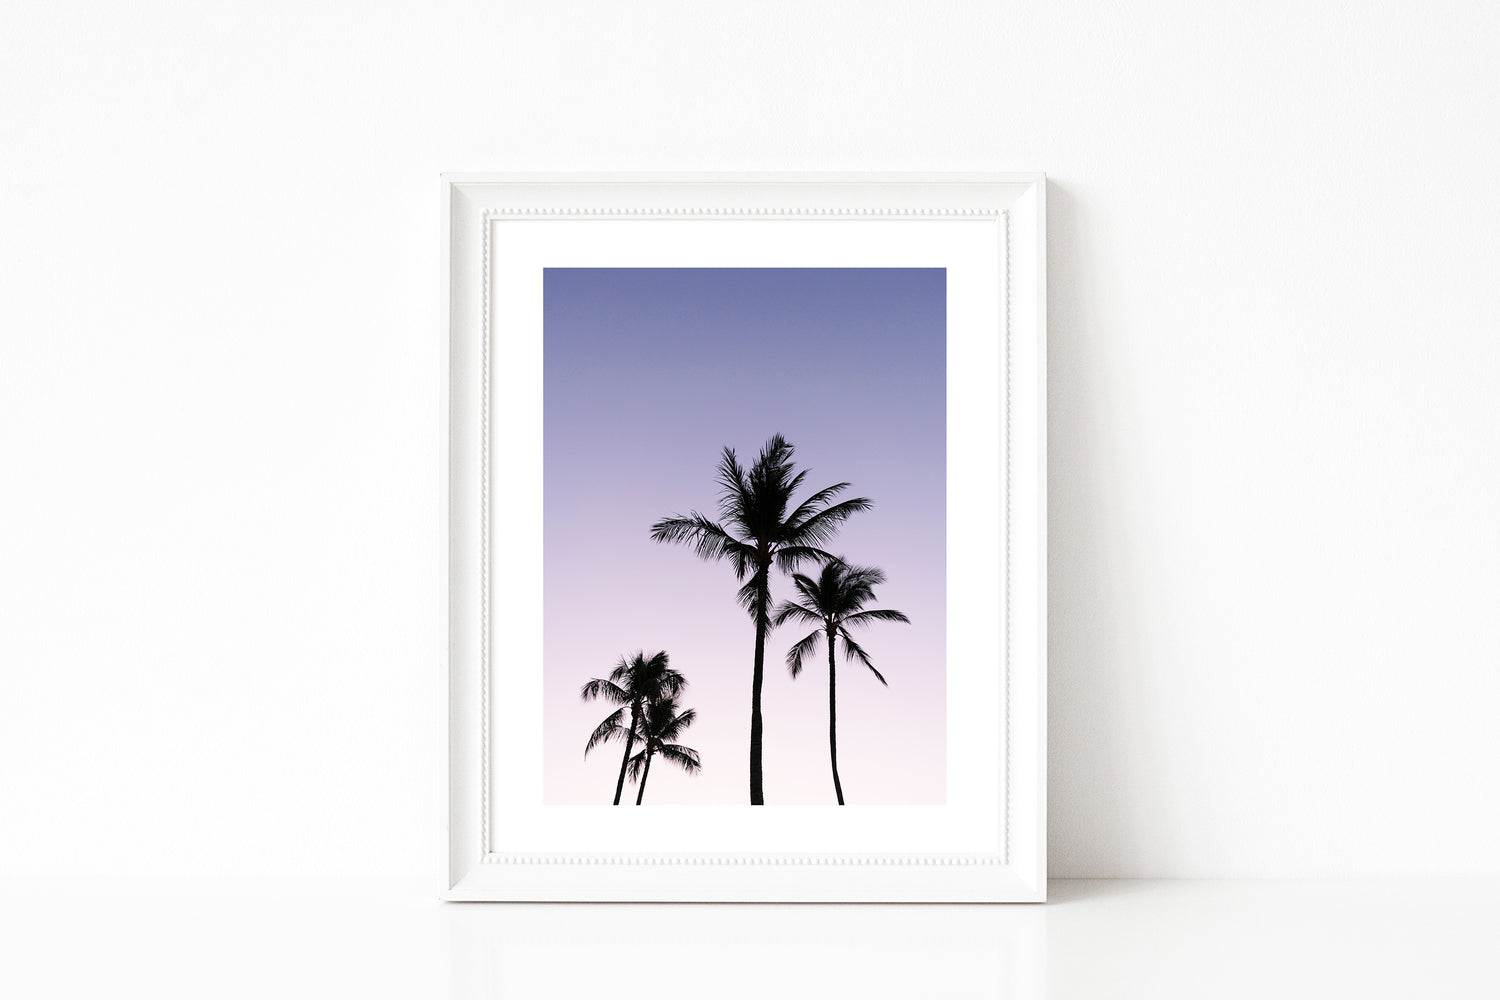 Hawaii Beach Photography - Palm Trees at Sunrise